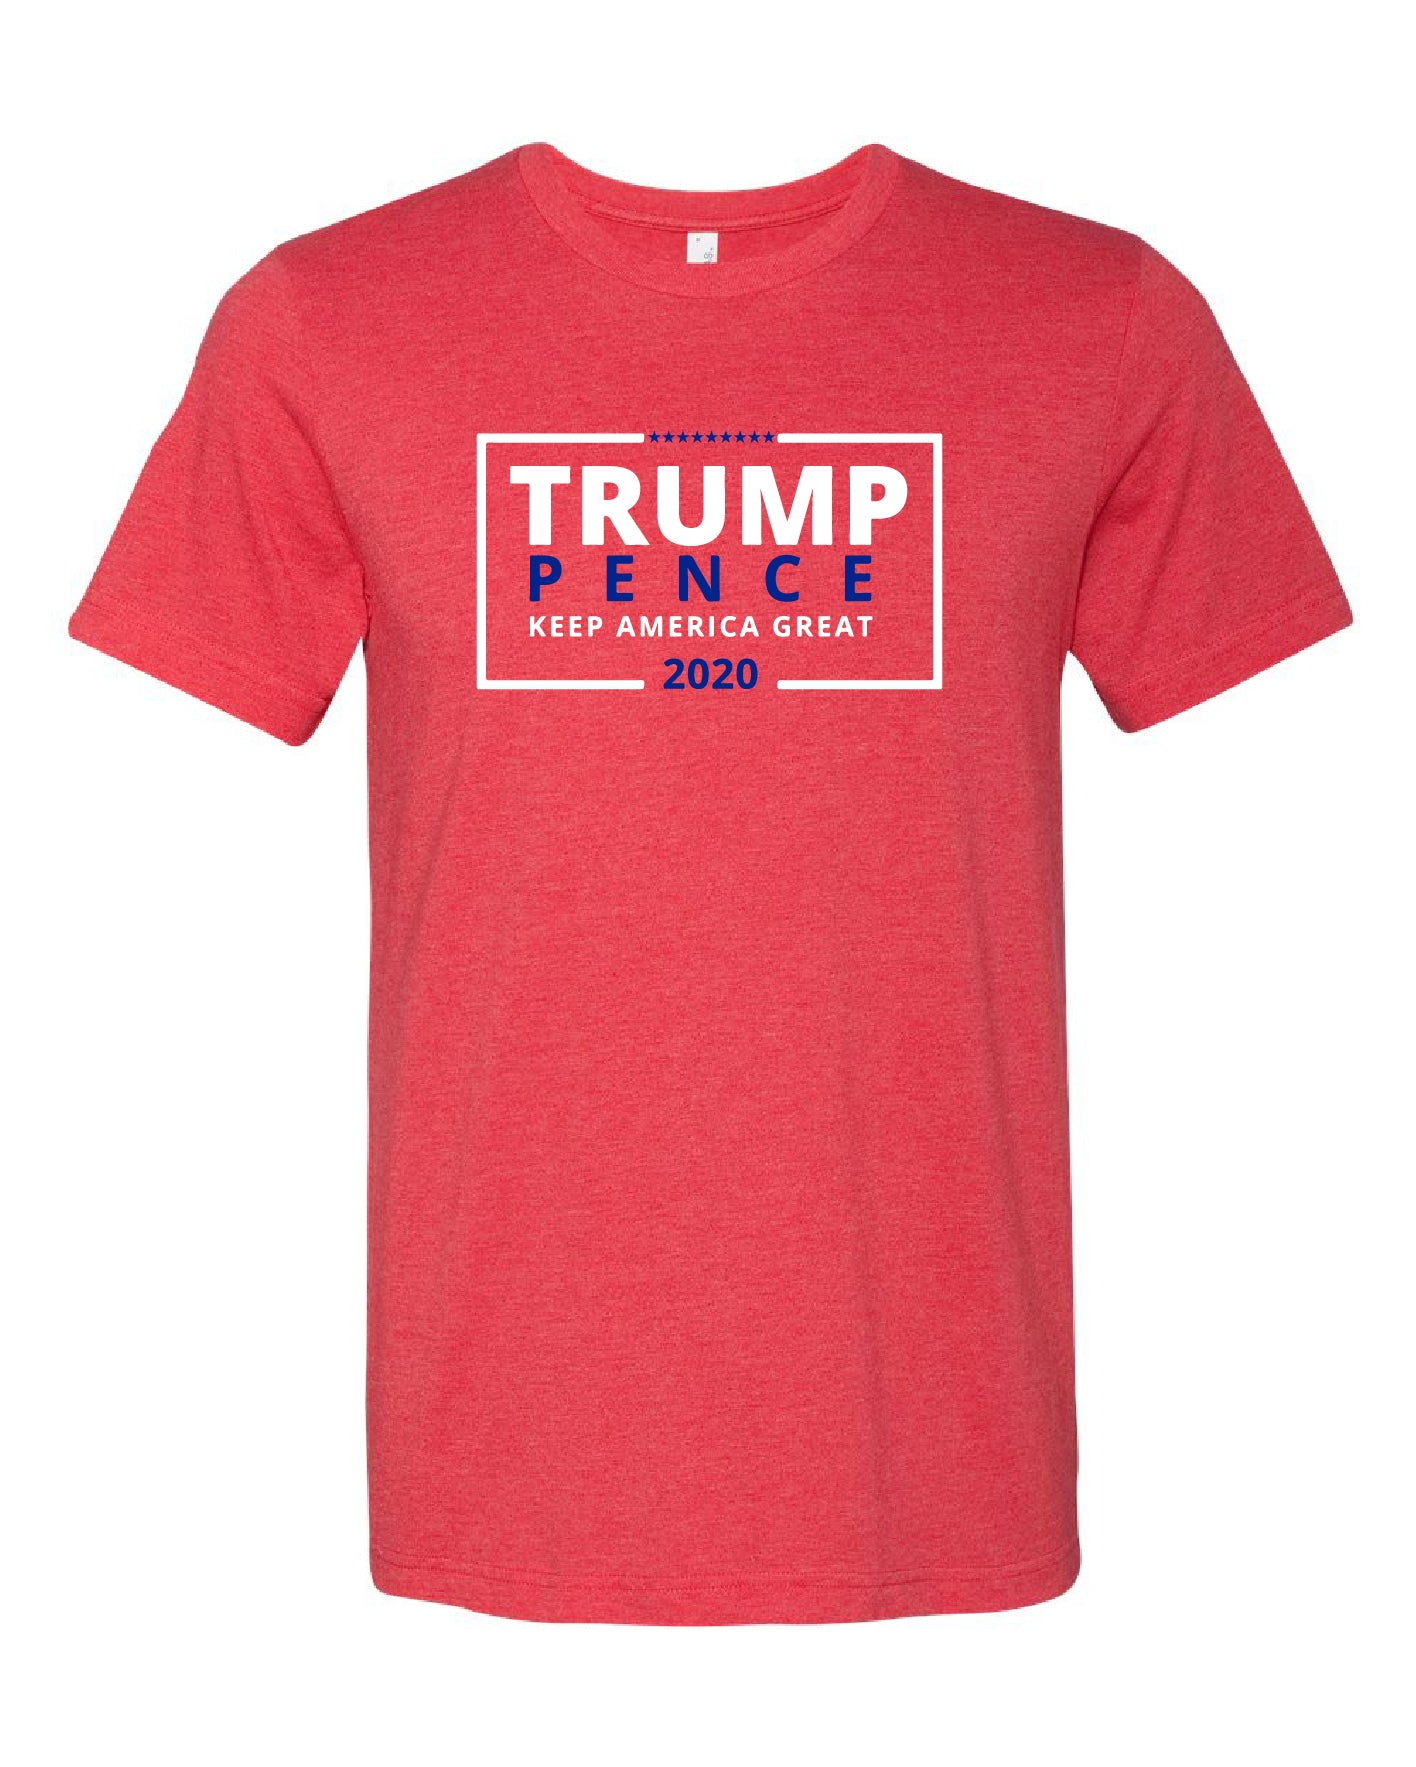 2020 Trump/Pence Red Tee